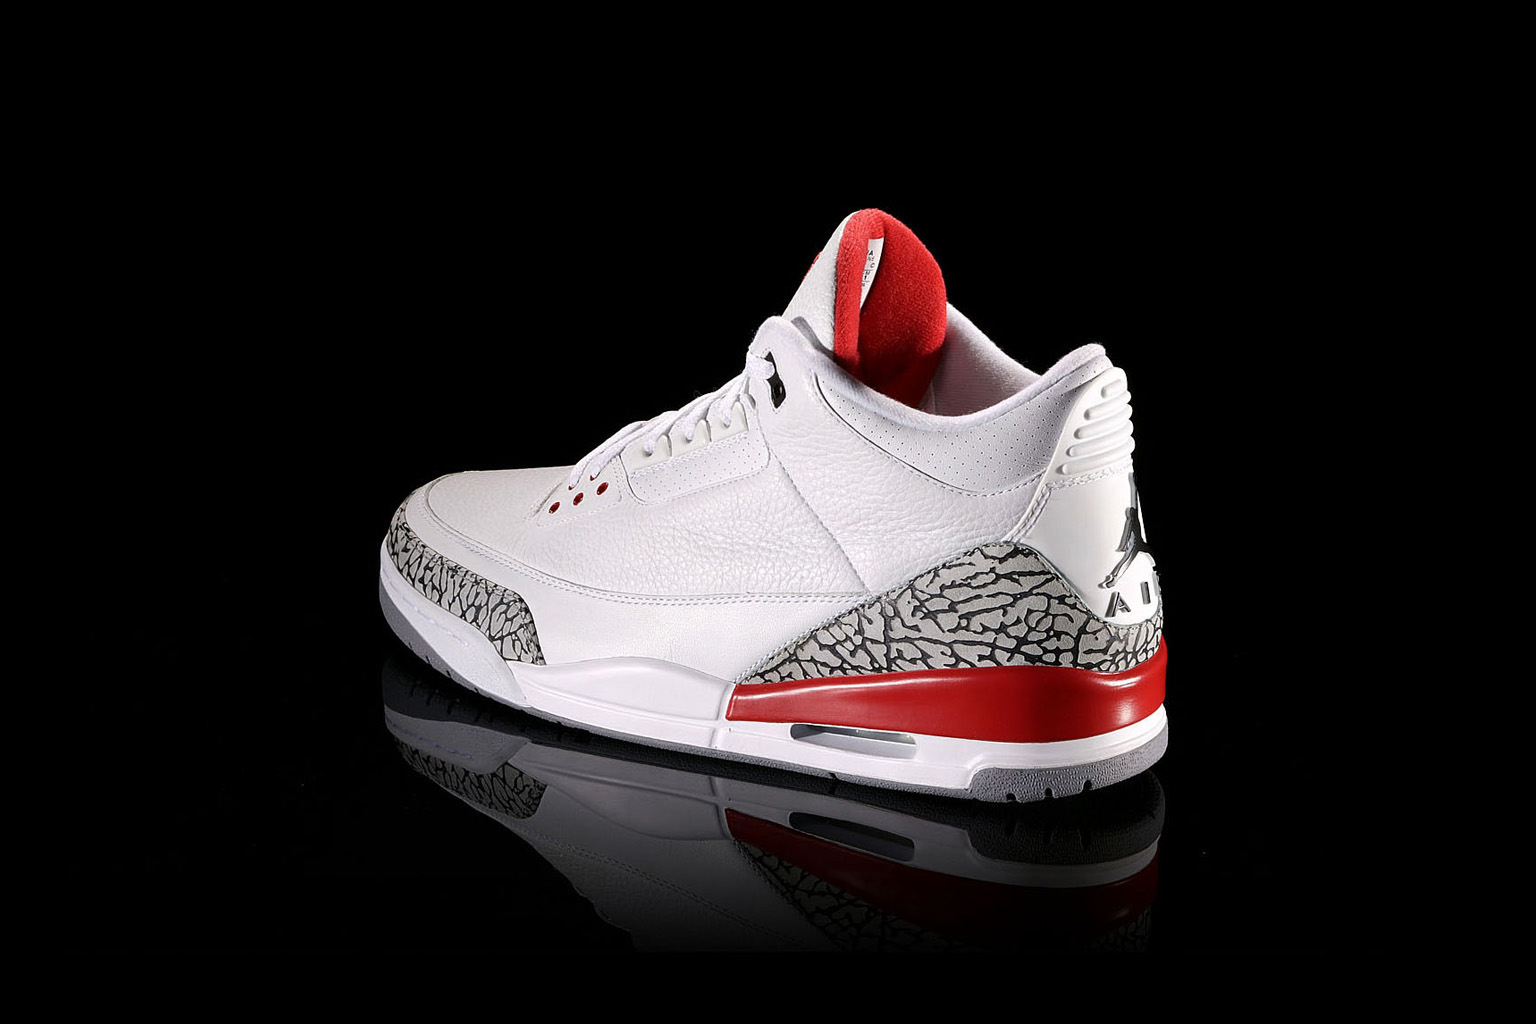 Jordan Shoes Quotes